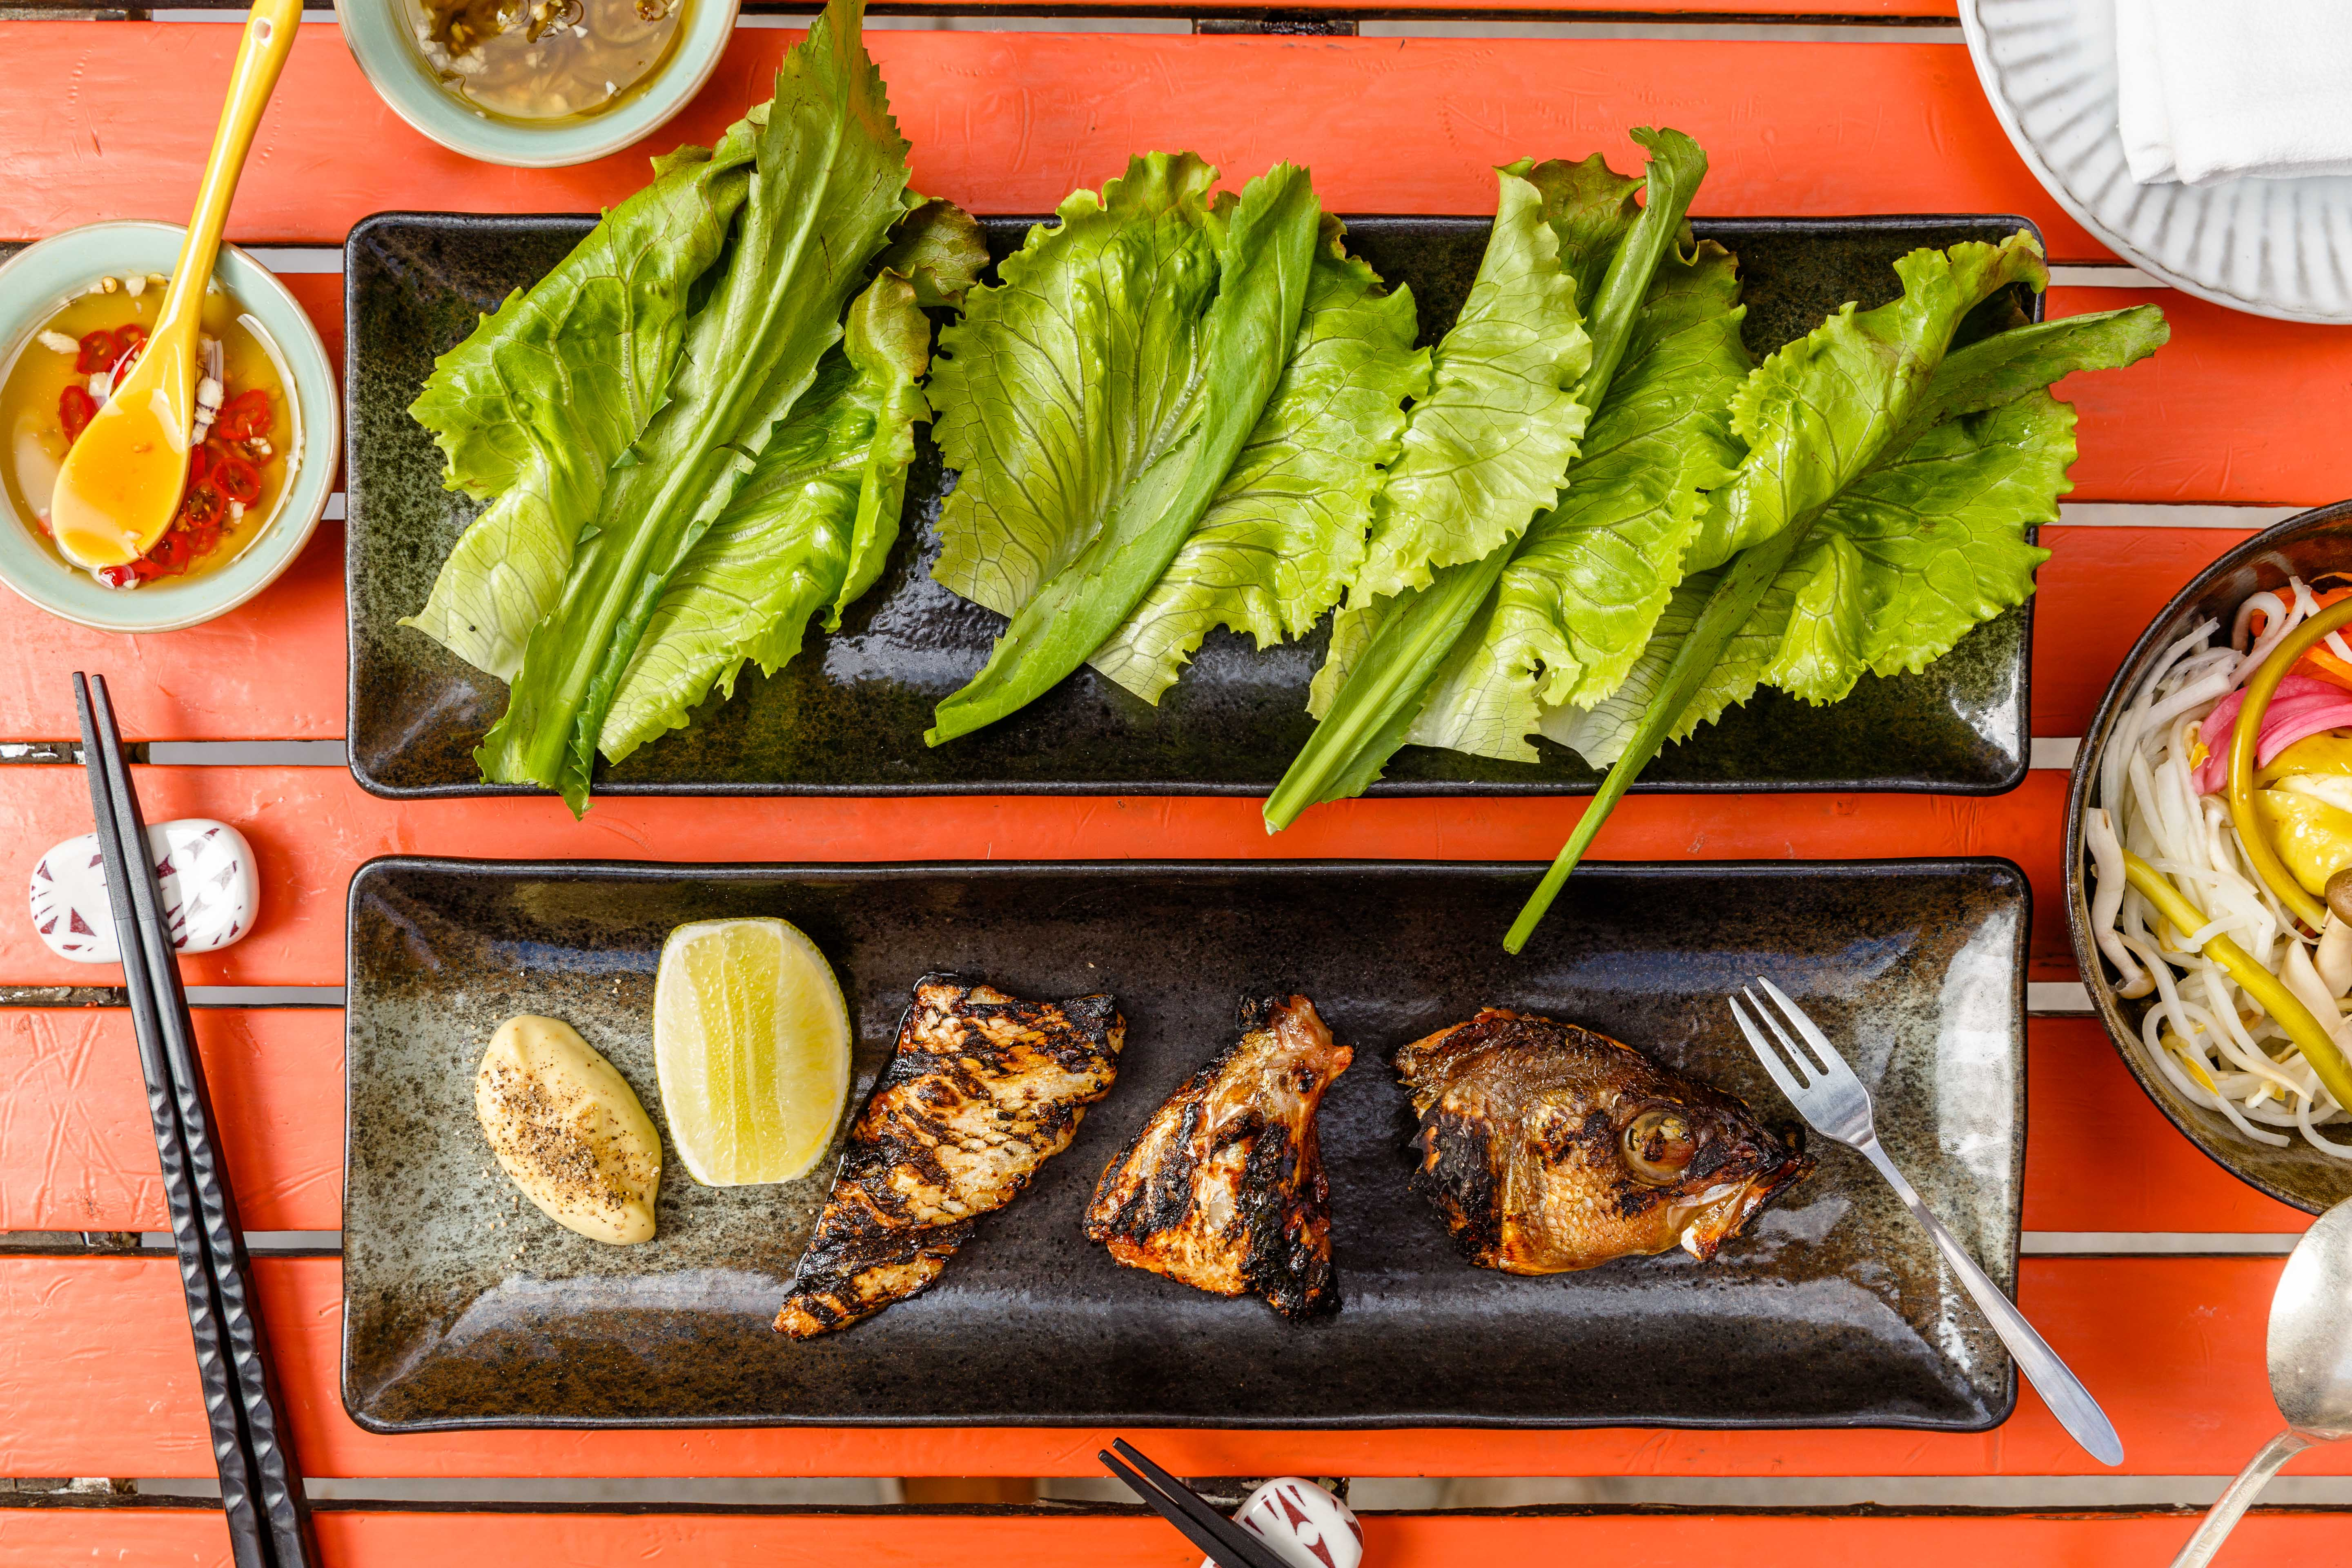 Fish head, collar, and belly sits on a plate next to a separate dish of lettuce leaves